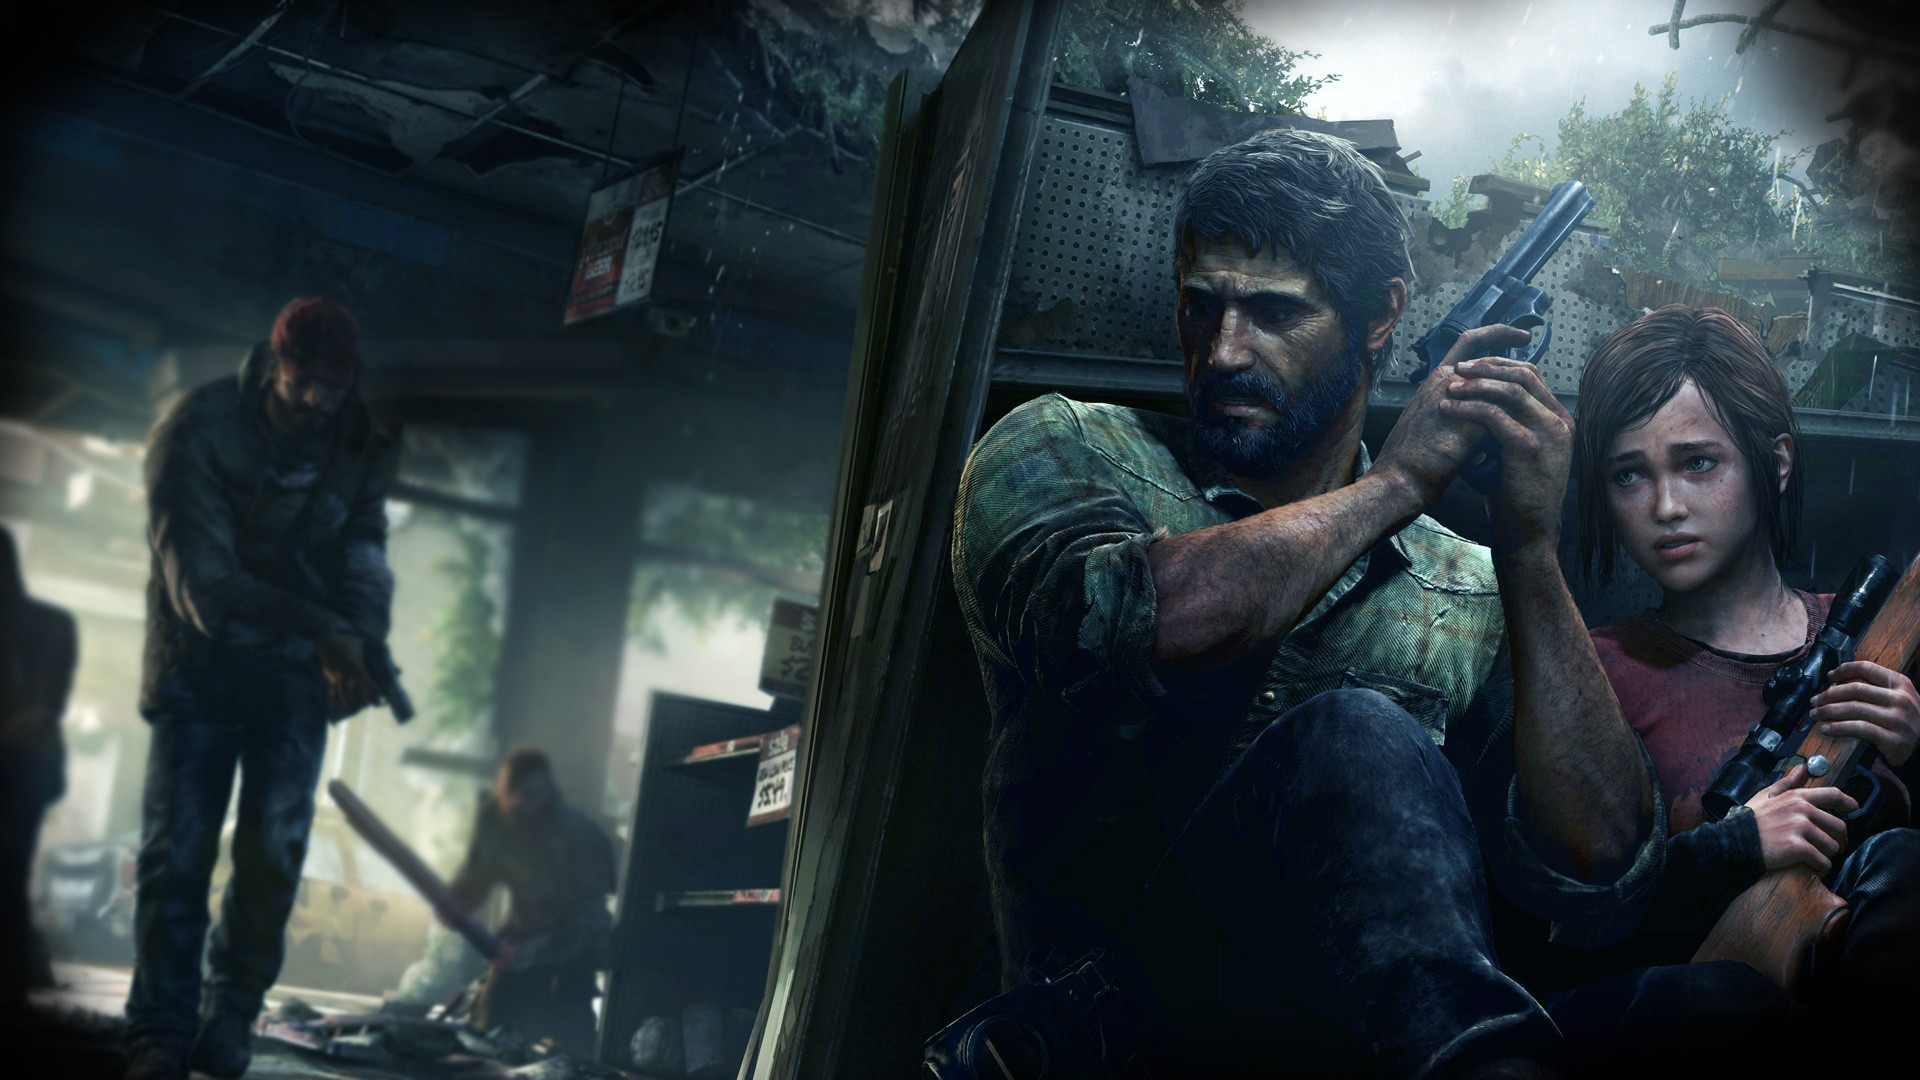 La película de 'The Last of Us' en peligro